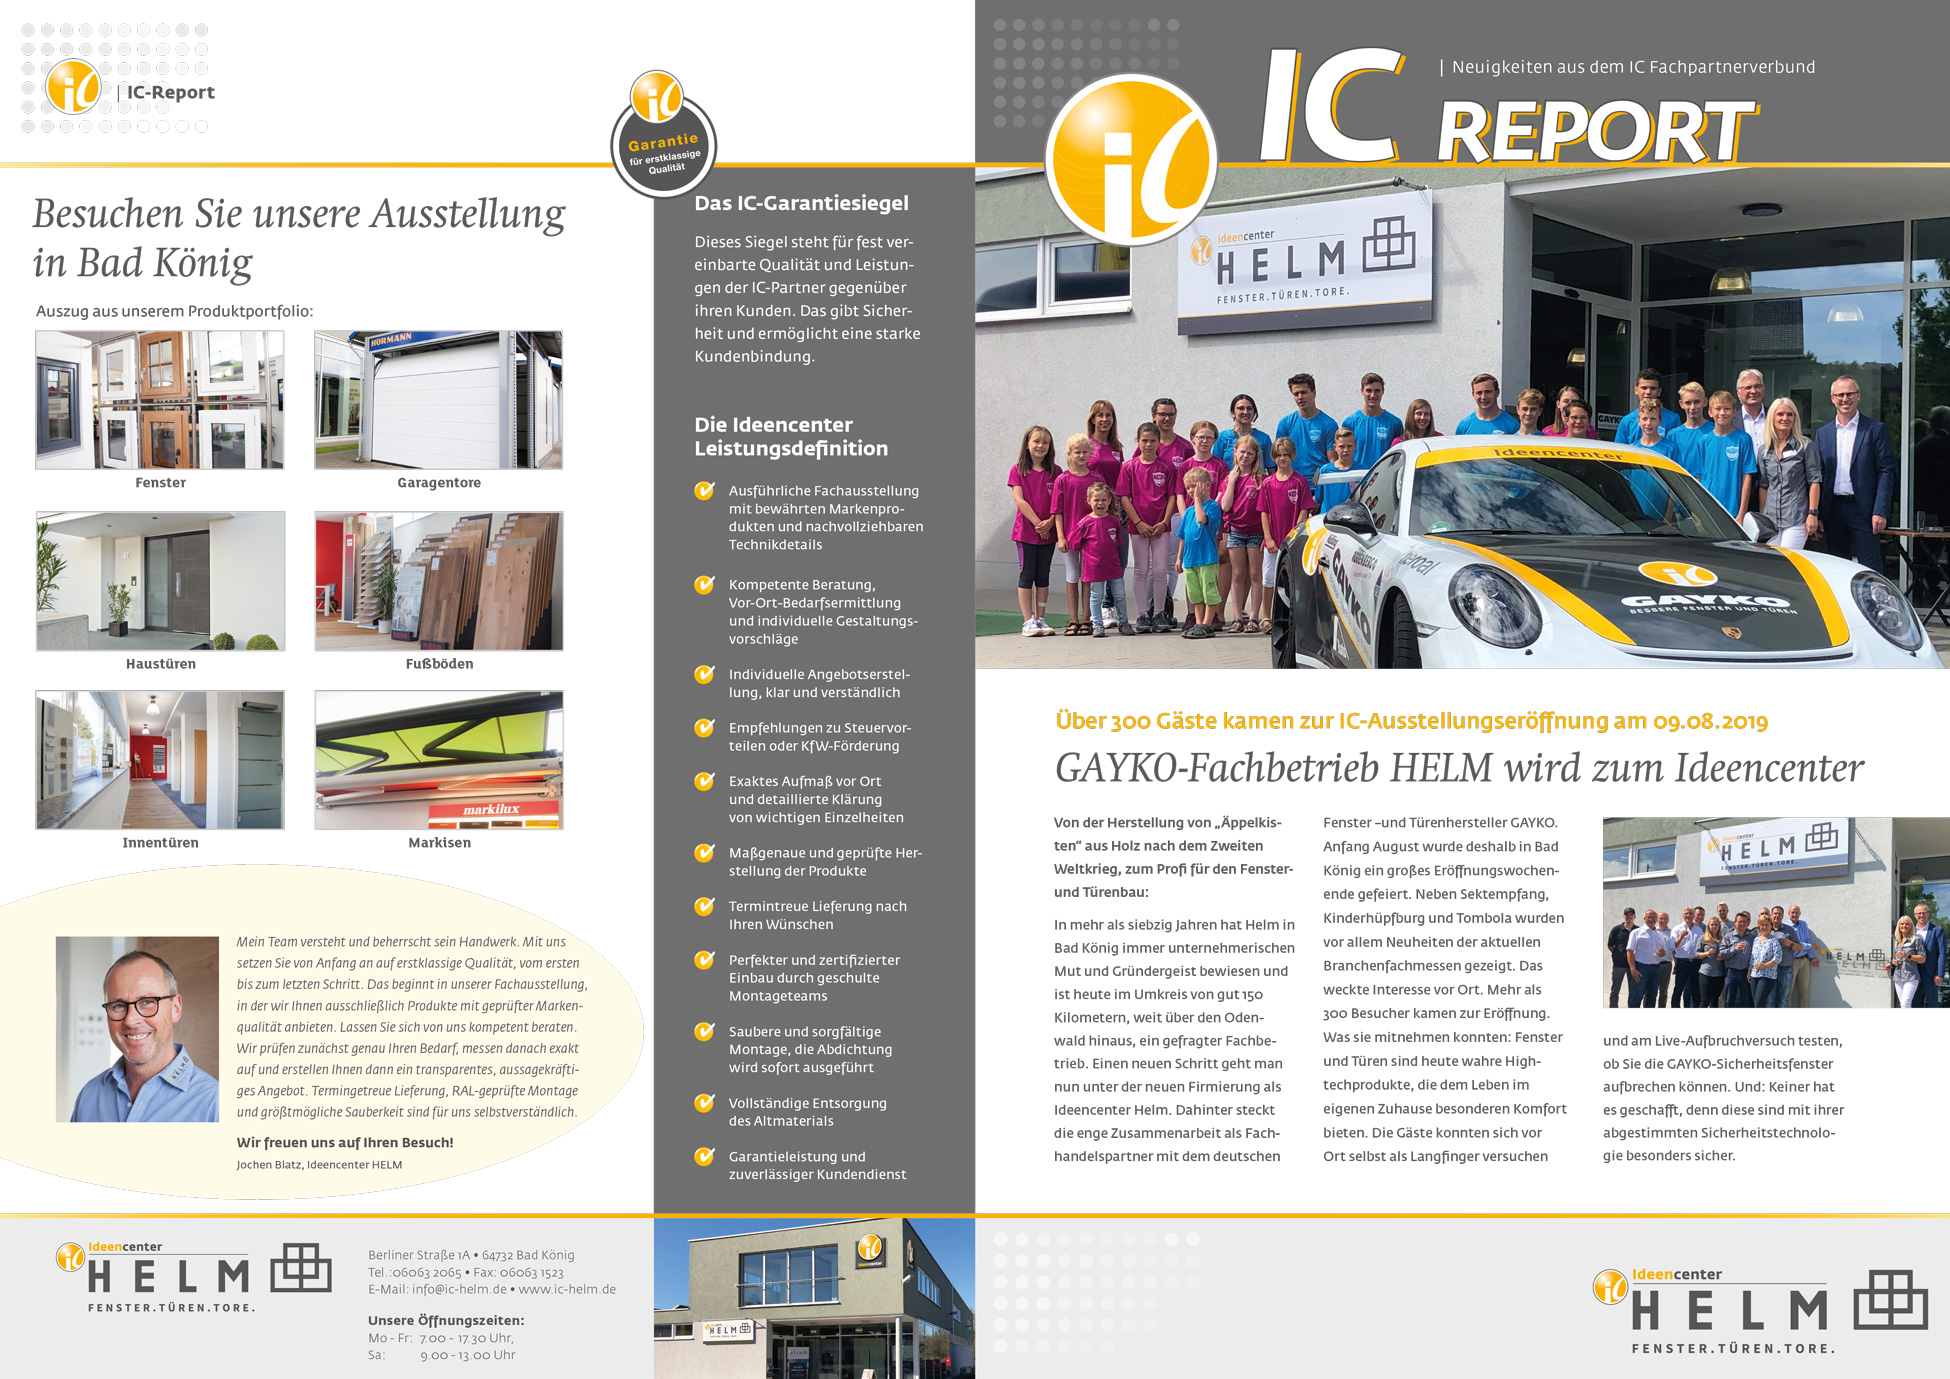 2019 10 ic report 1